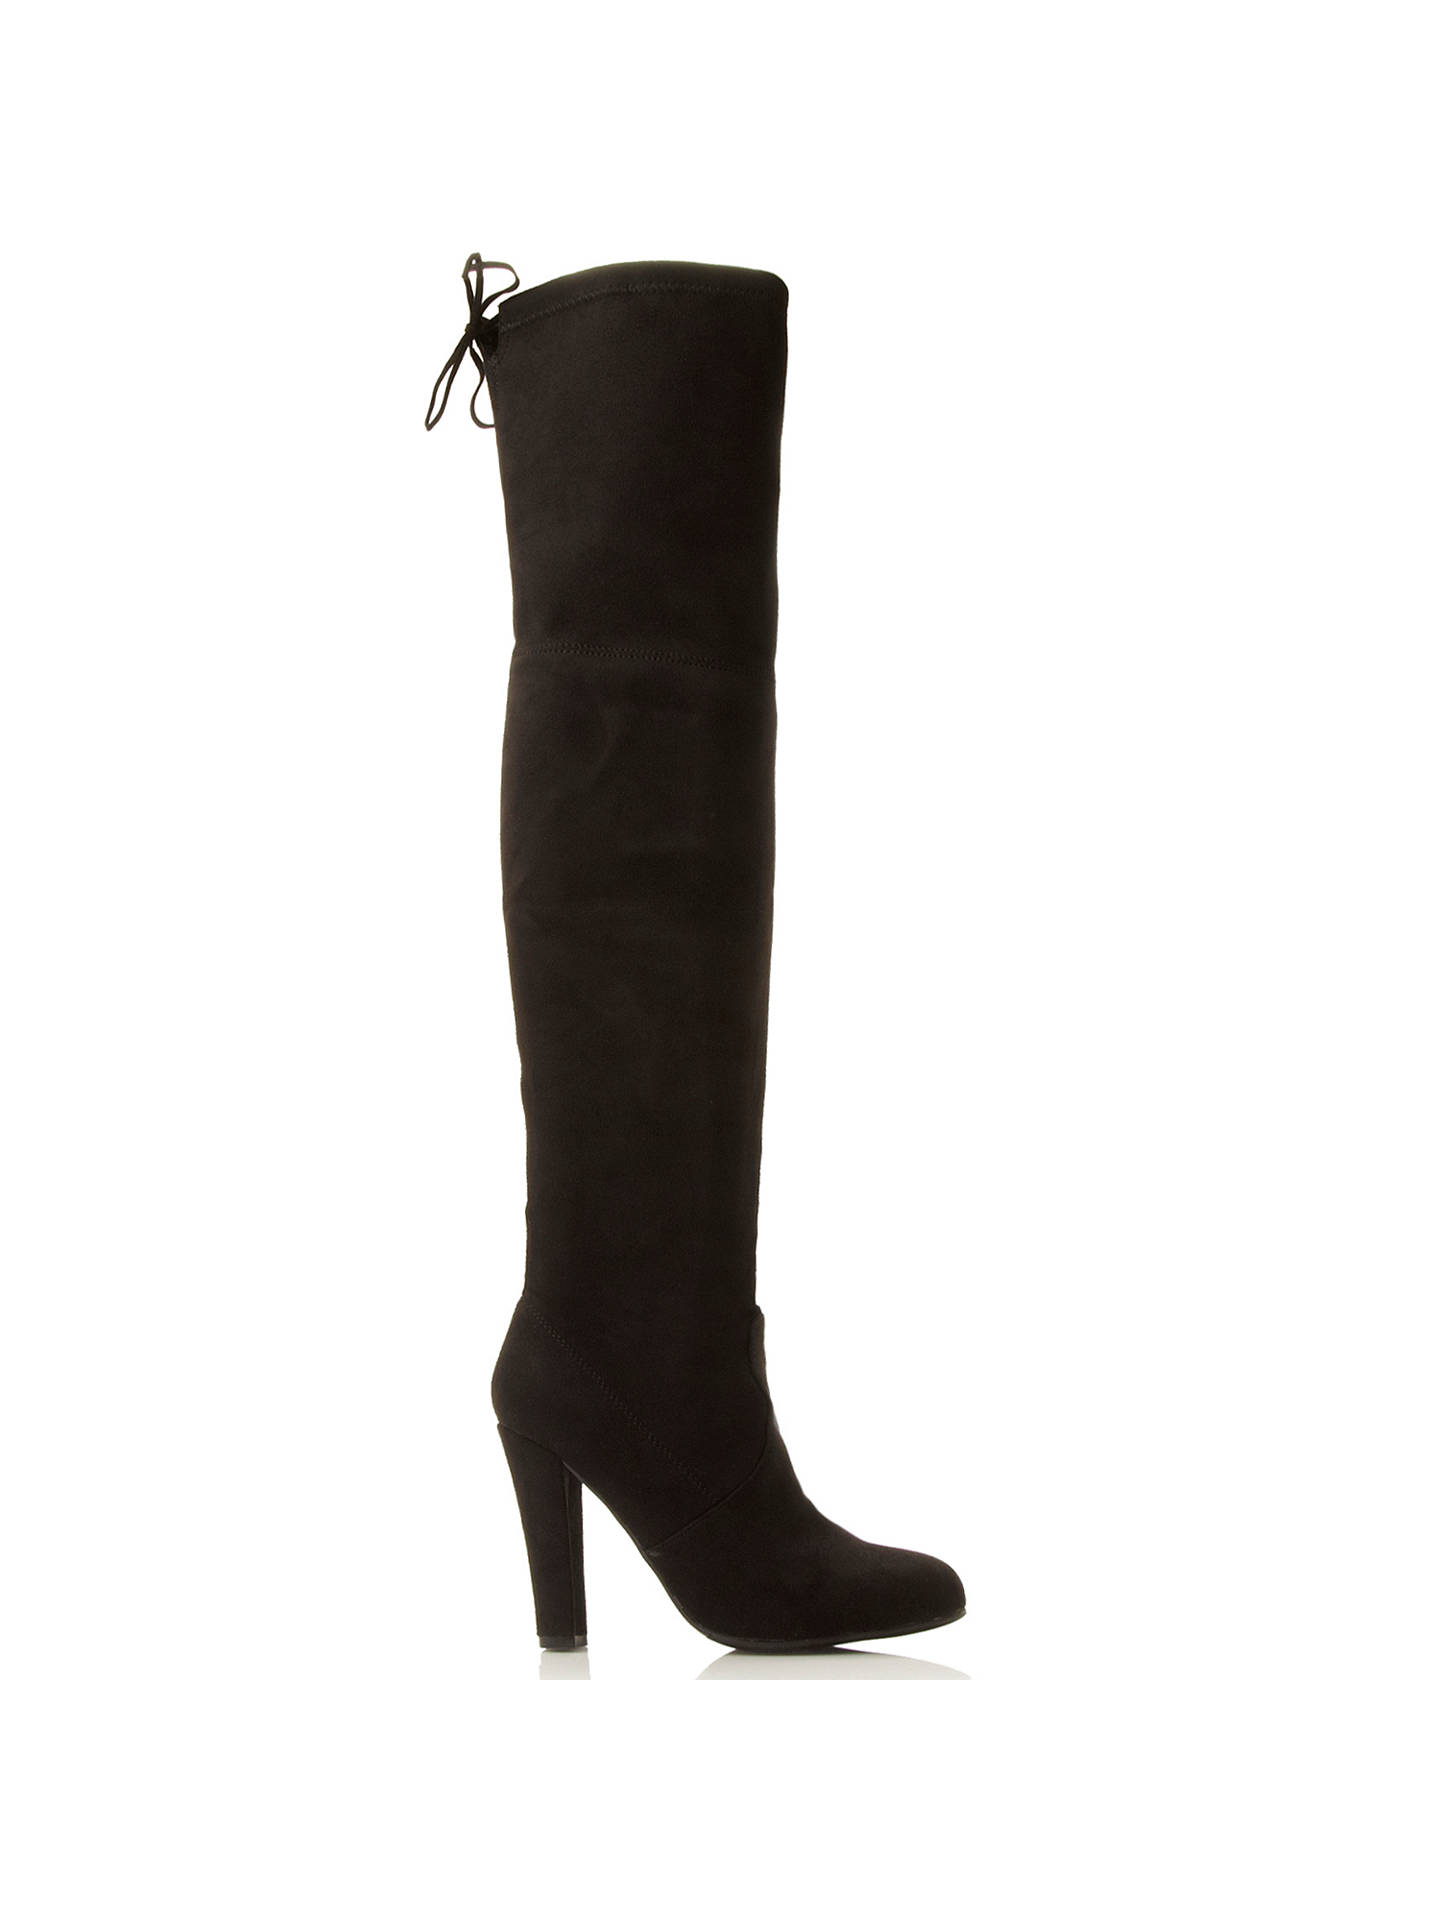 Separación rosado pasta  Steve Madden Gorgeous Pull On Over The Knee Boots at John Lewis & Partners